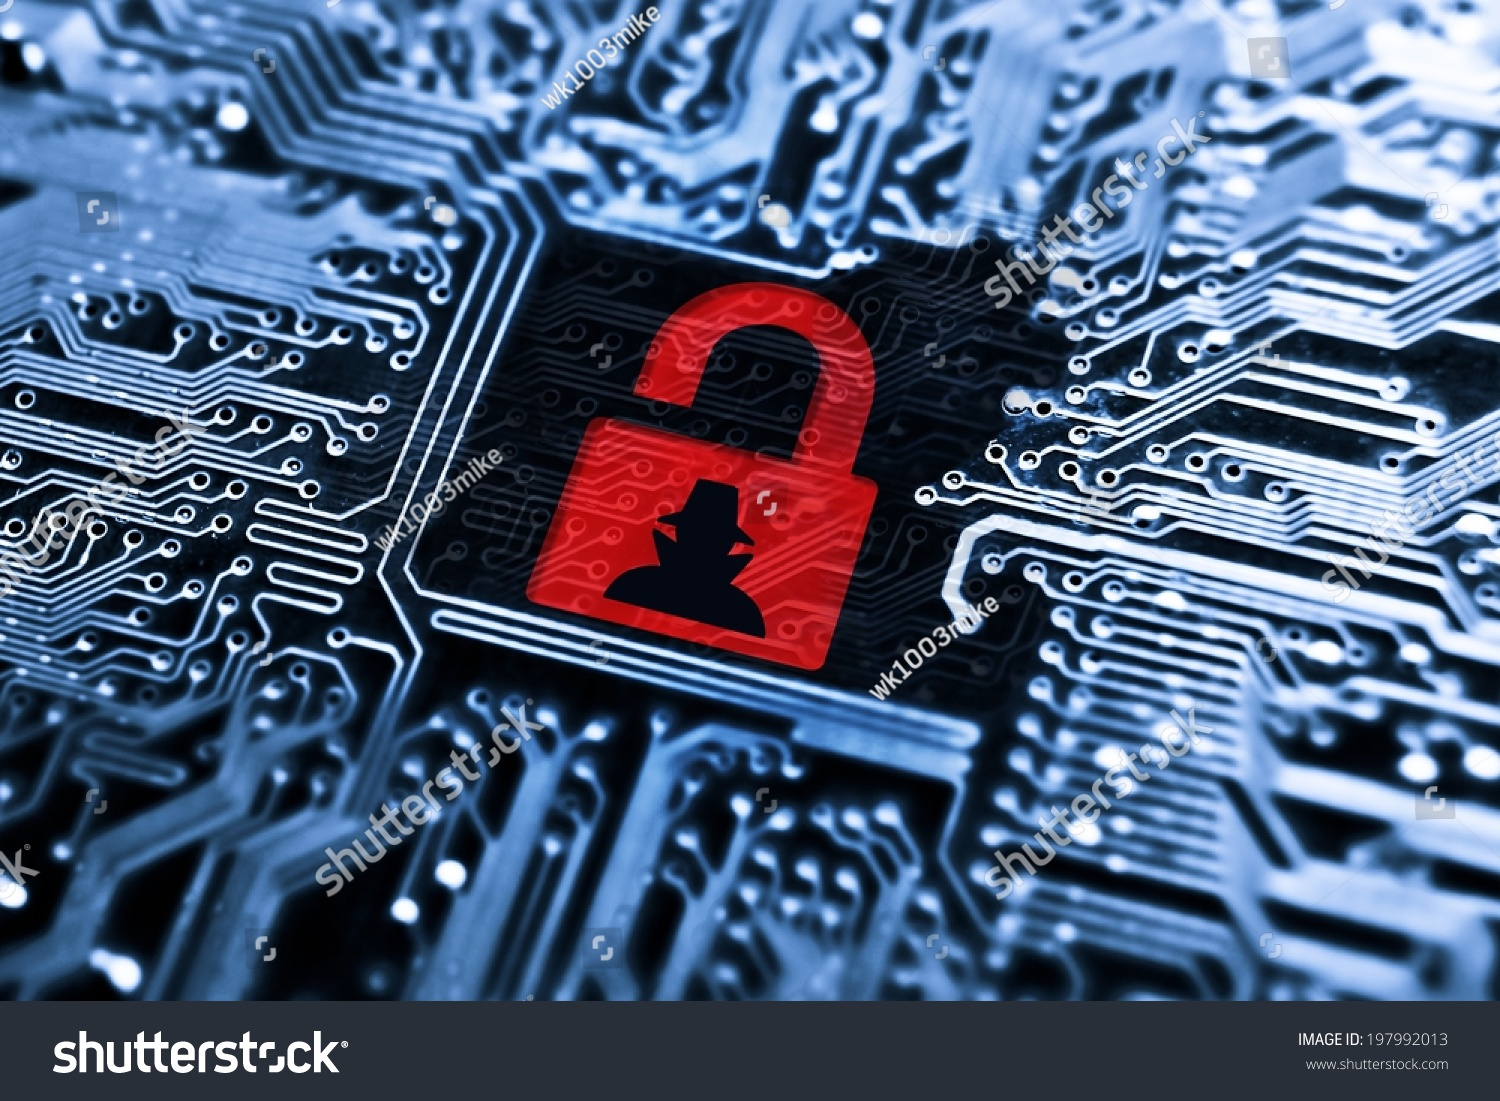 hacked symbol on computer circuit board stock photo (edit nowhacked symbol on computer circuit board with open red padlock